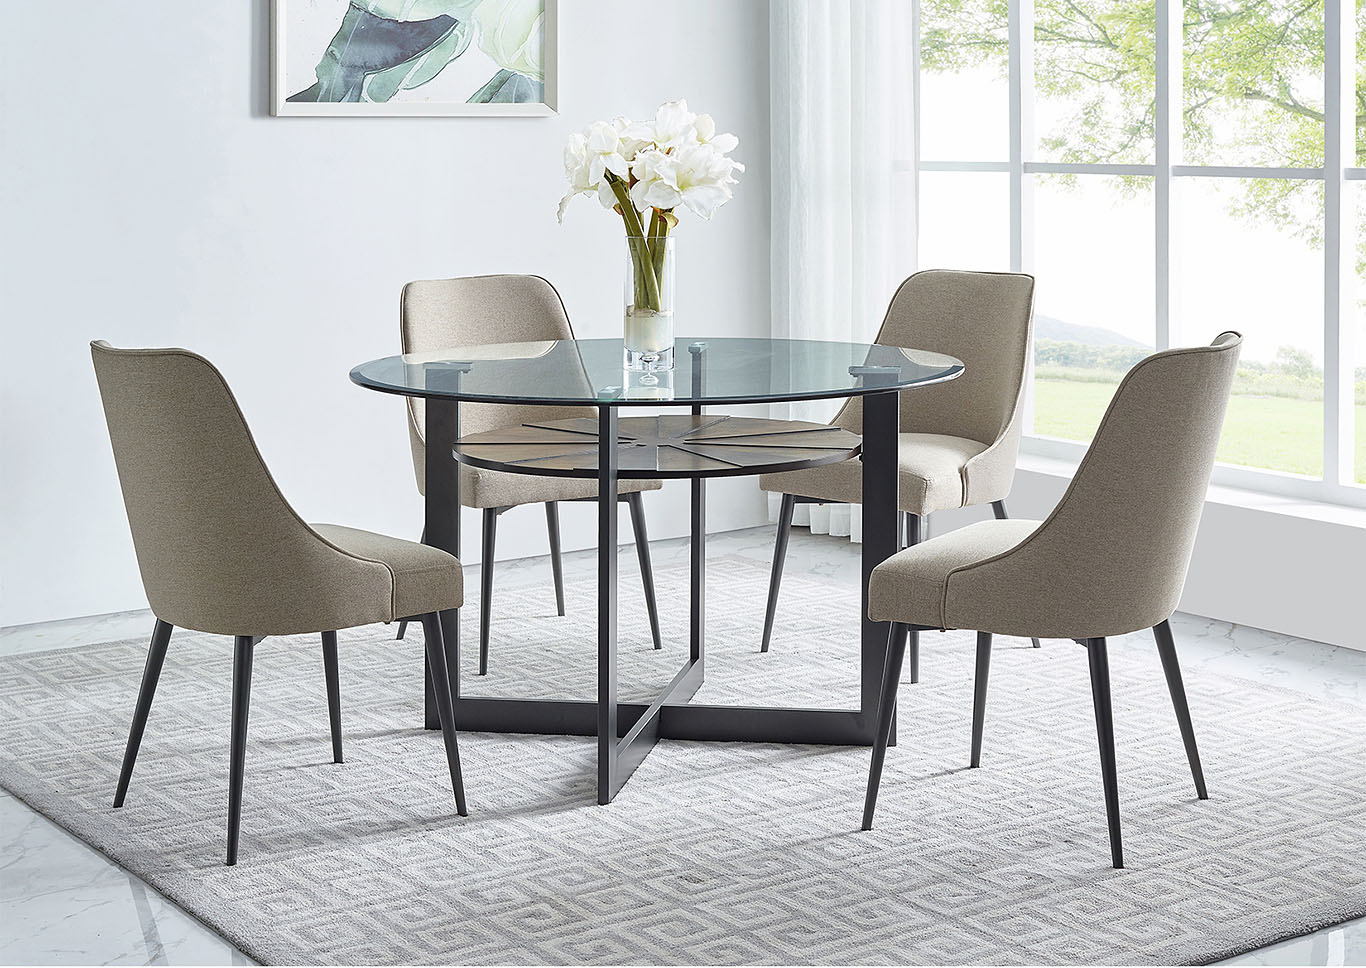 Picture of: Olson Grey Round Glass Top Dining Set W 4 Chairs Ivan Smith